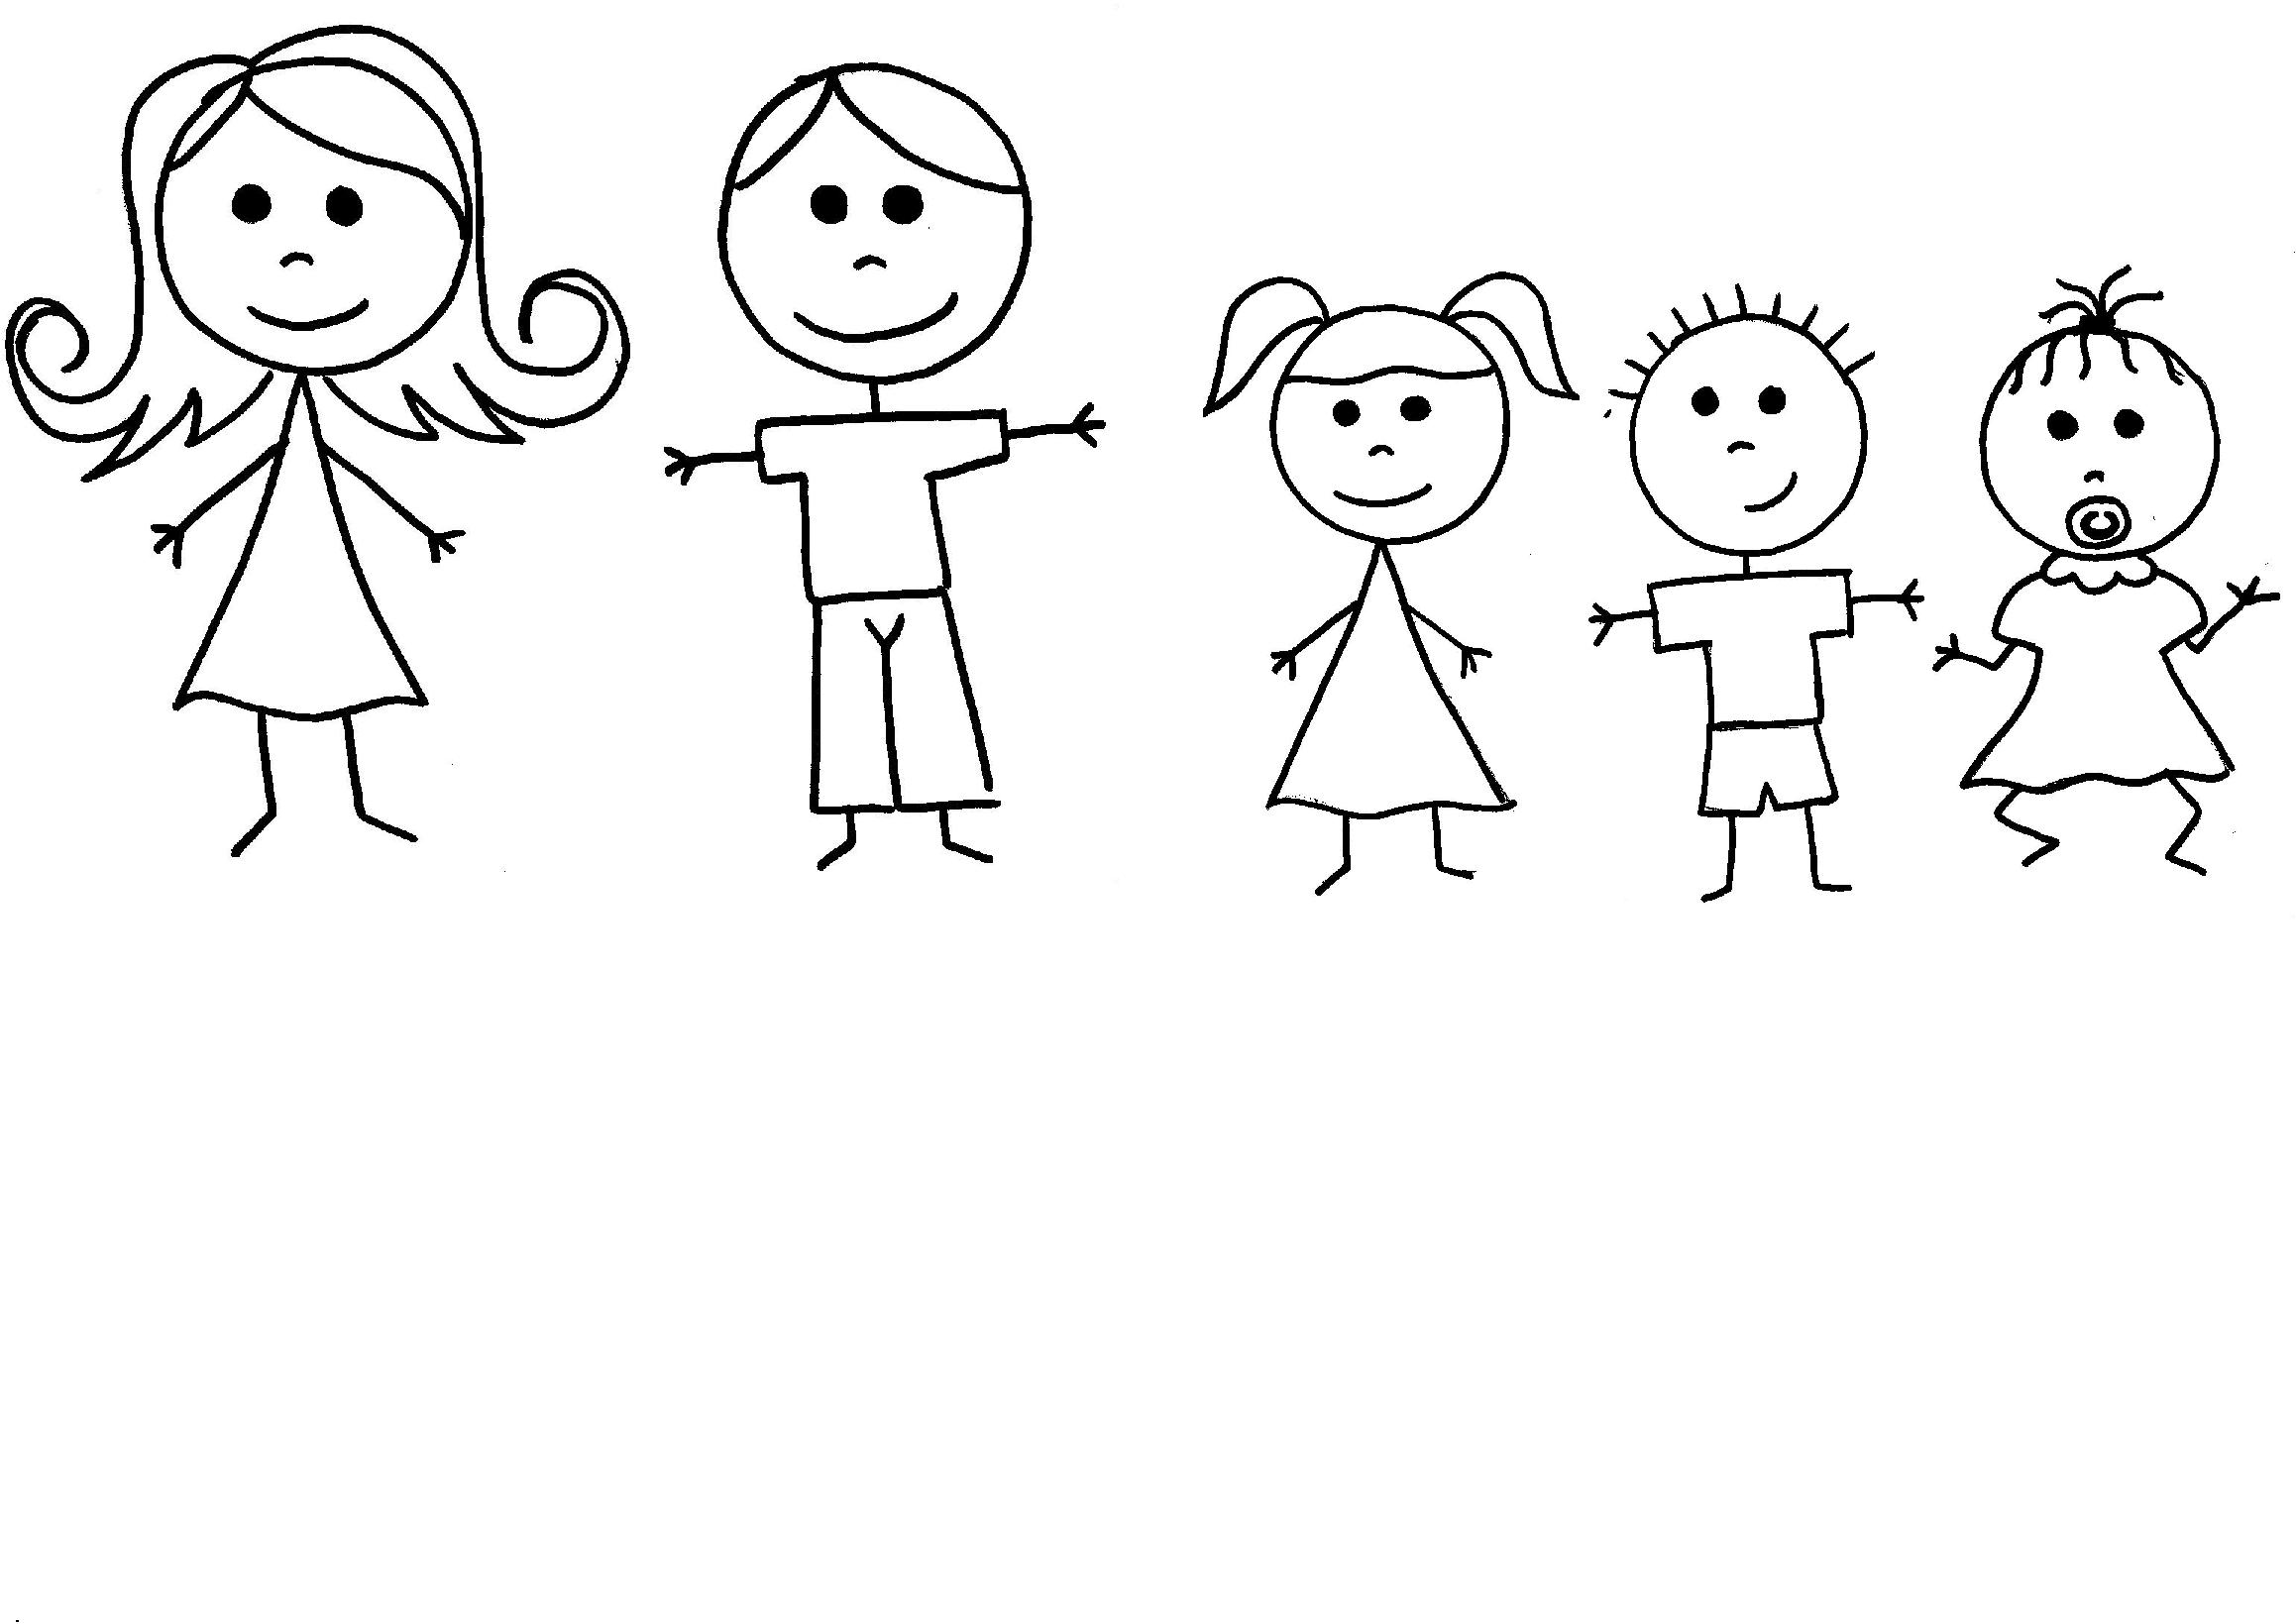 Stick african american family of 5 clipart png royalty free download Free Family Stick Figures, Download Free Clip Art, Free Clip Art on ... png royalty free download